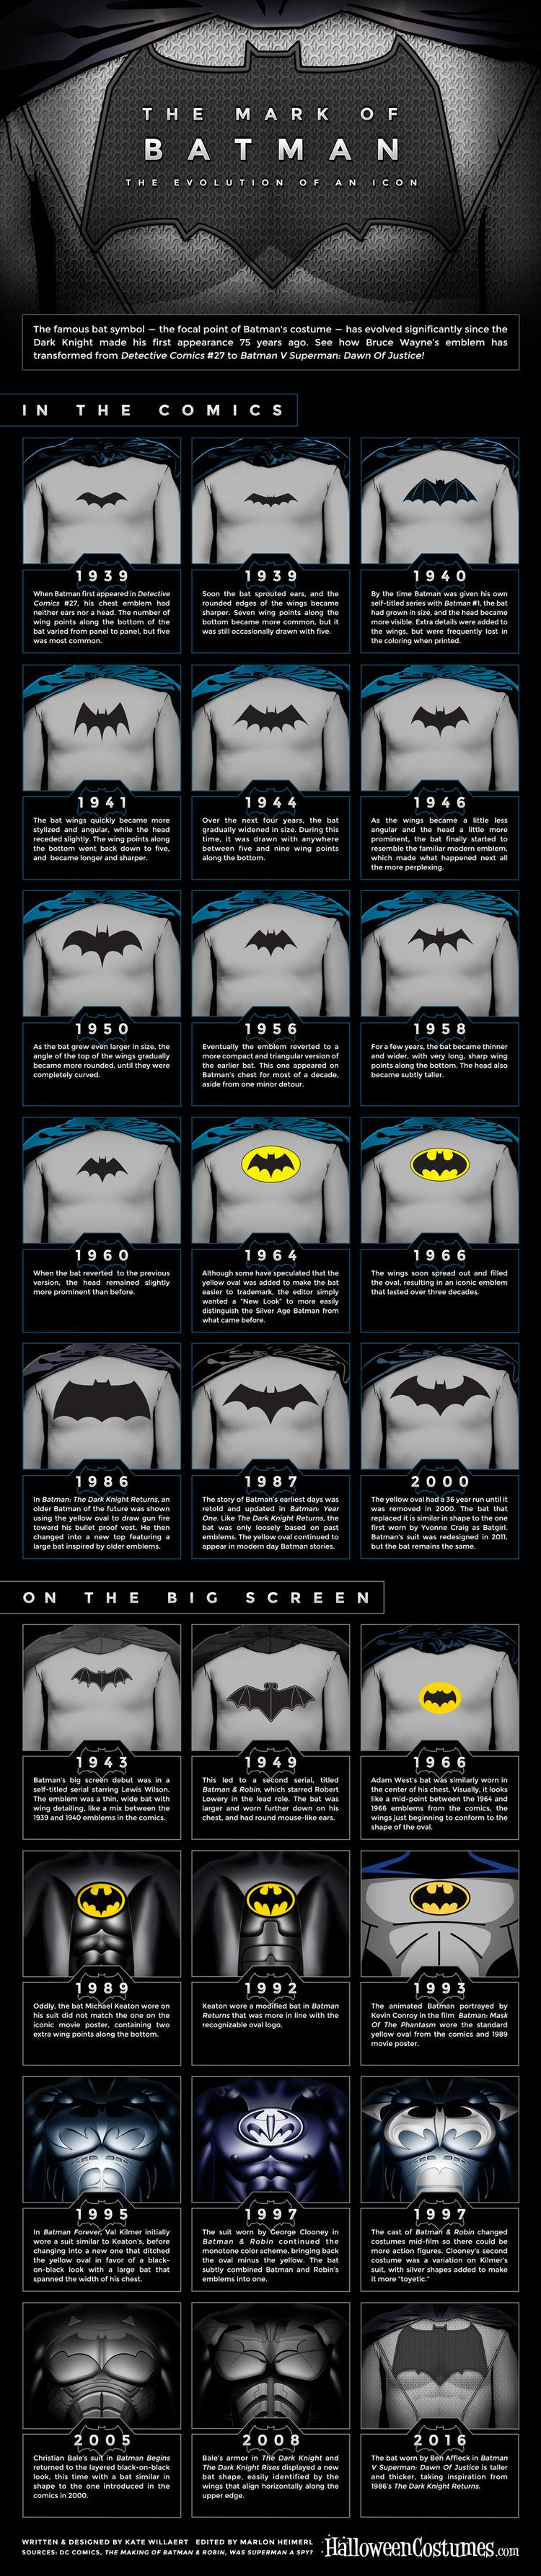 Batman Logo Infographic